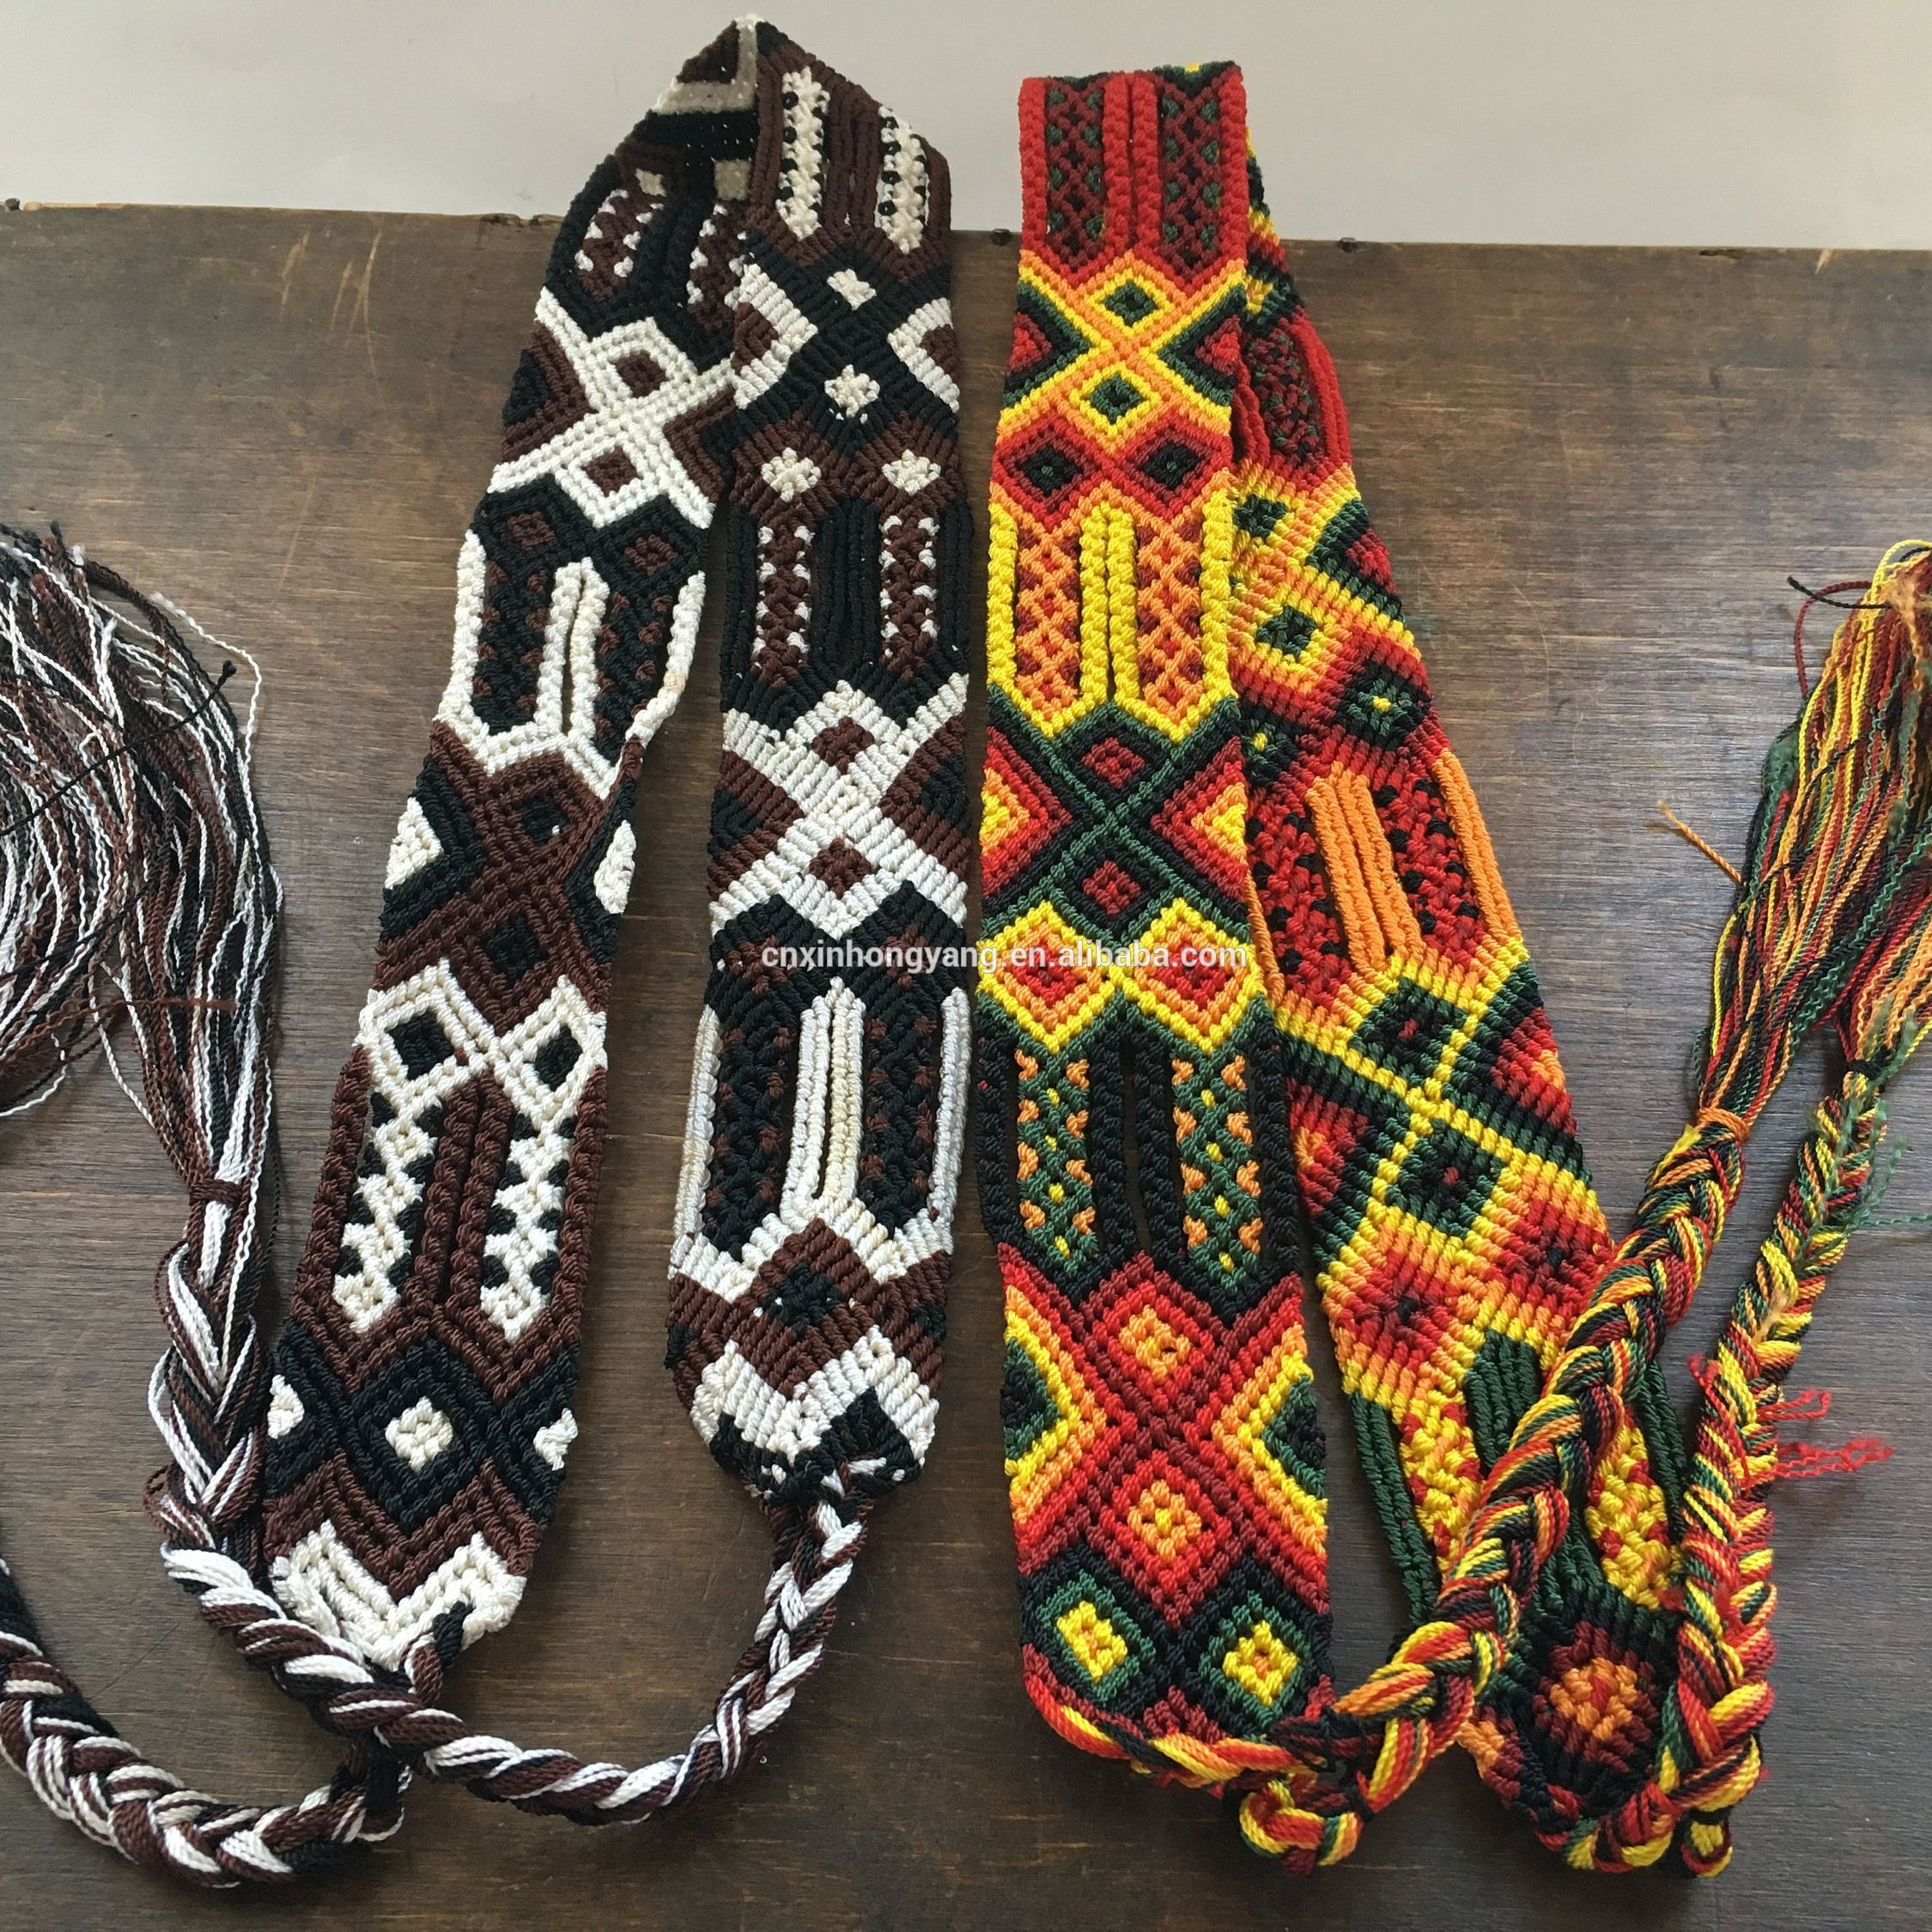 25 years factory custom macrame hand woven belts, weave friendship belt, purse strap in various colors